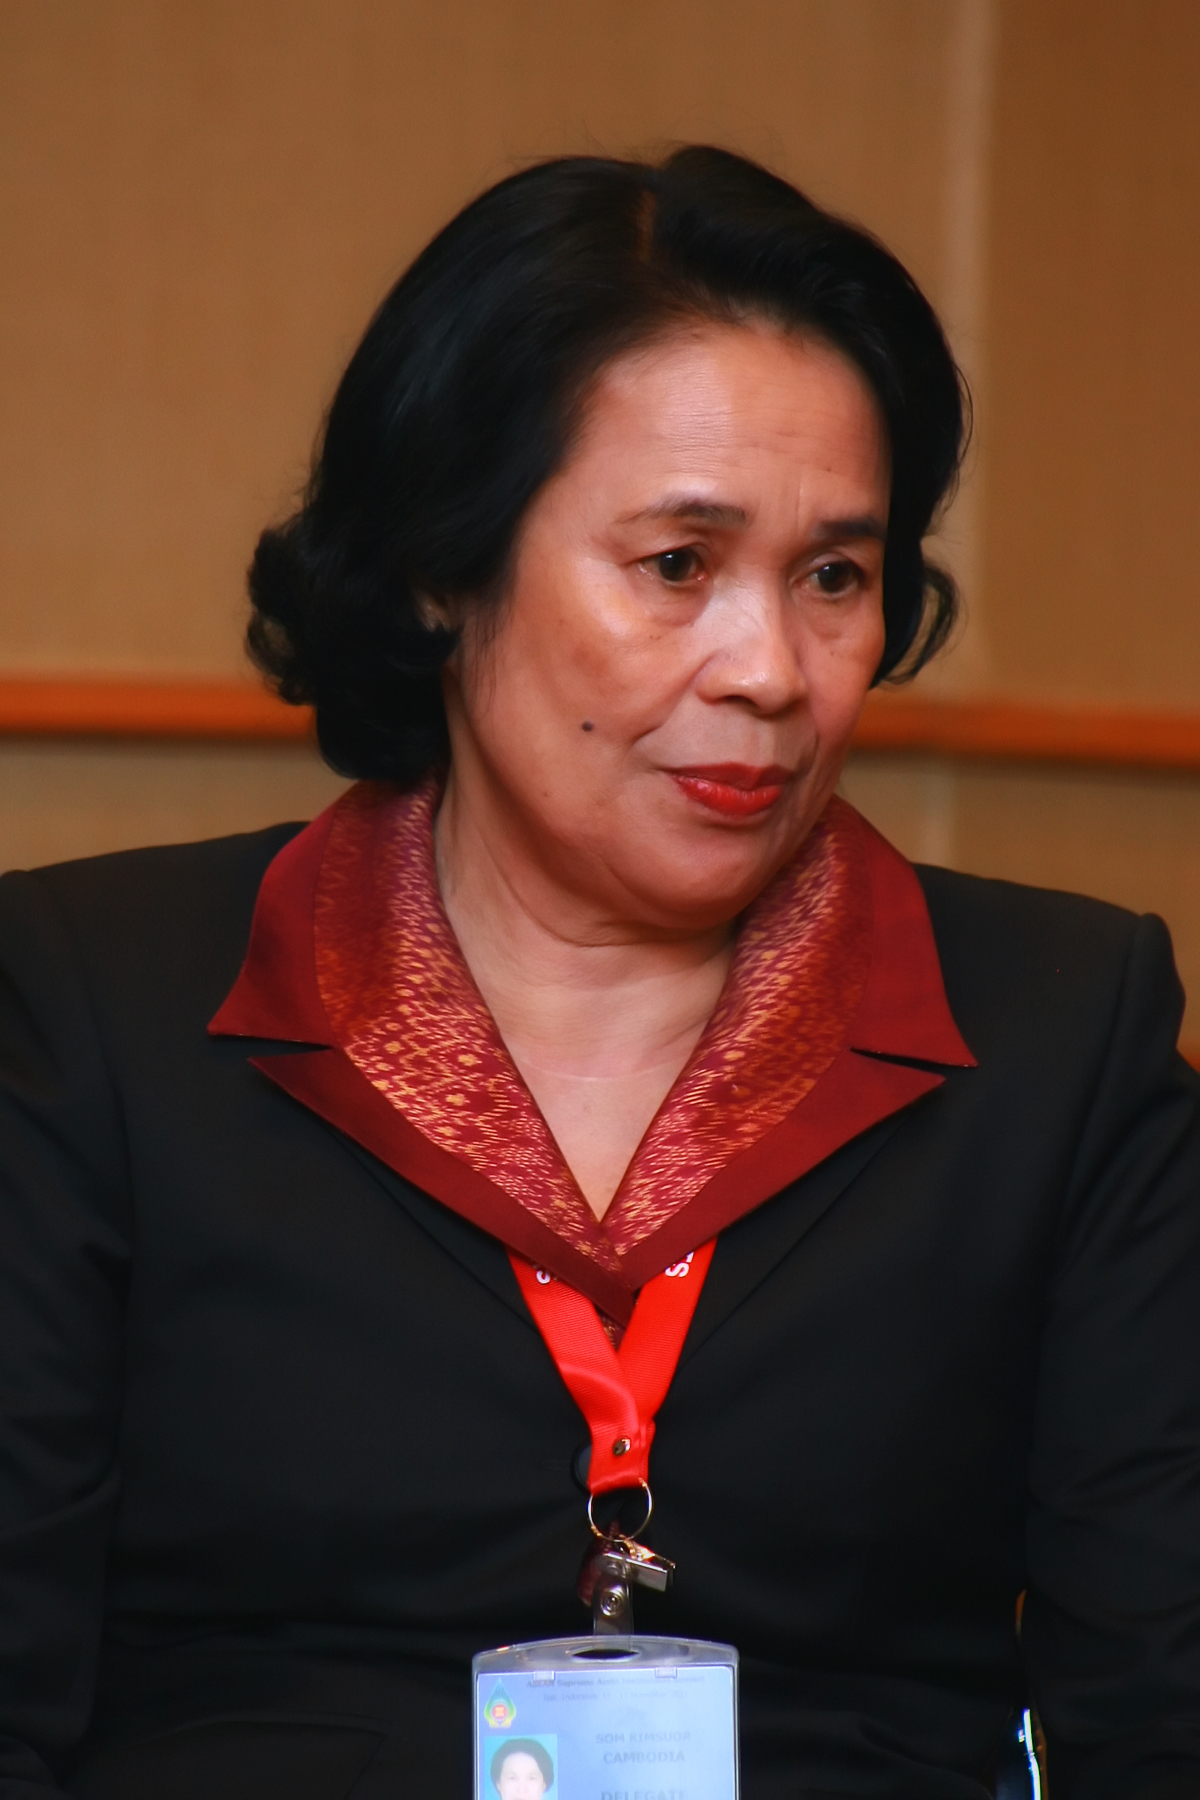 Sex: Female. Nationality: Cambodian. Date of birth: October 30, 1949